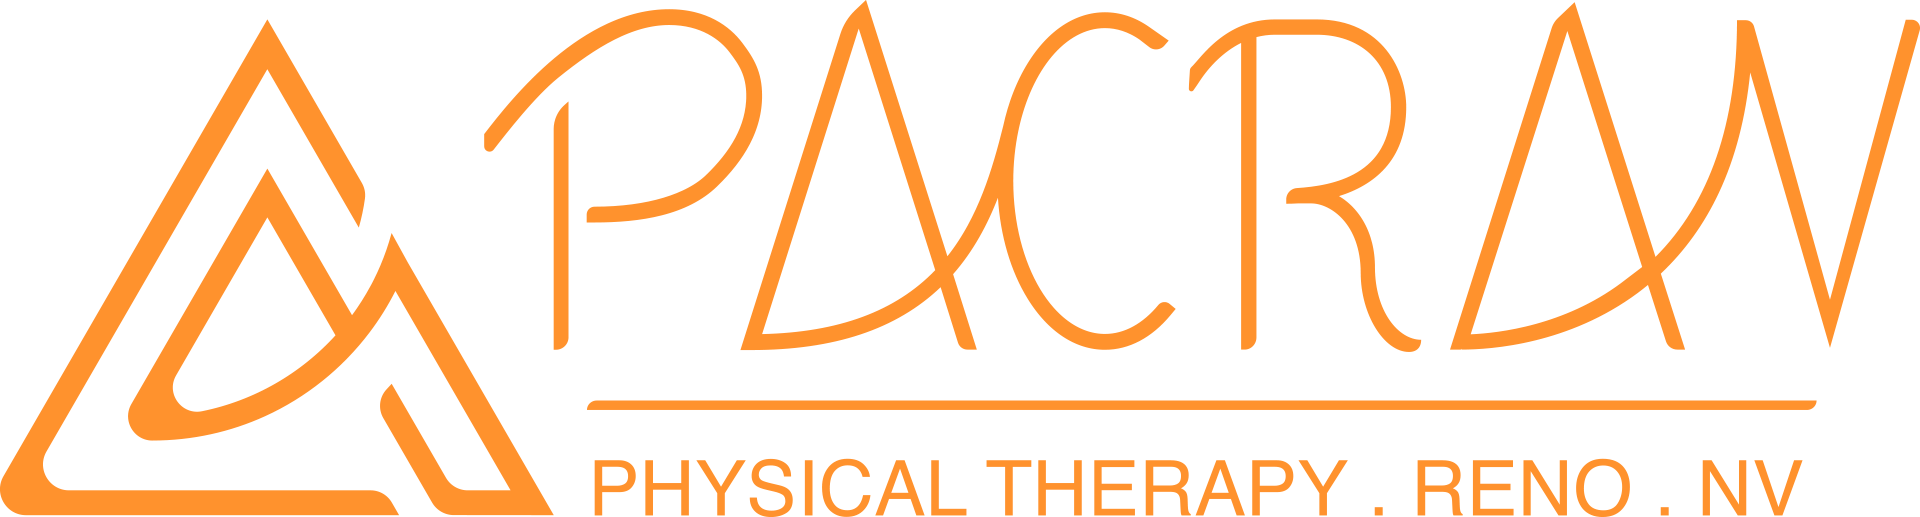 pacrav physio therapy logo in full with icon work mark and tagline